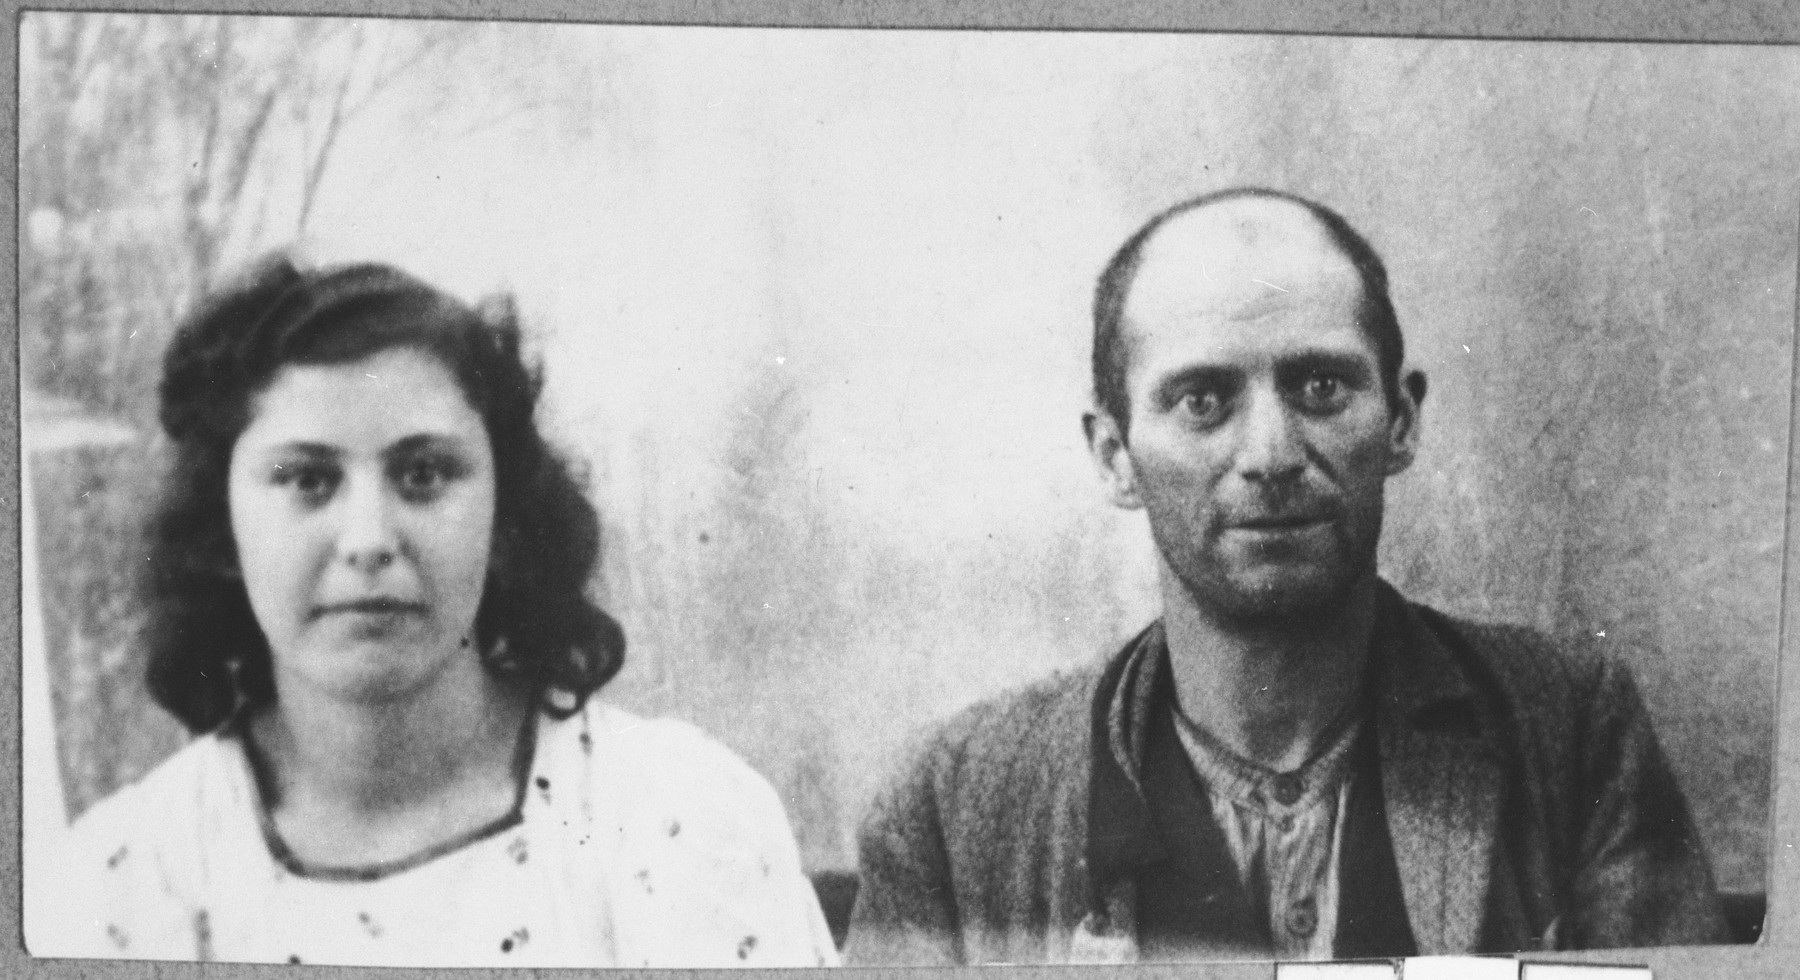 Portrait of Nissim Koen, son of Shalom Koen, and his daughter, Bela Koen.  Nissim was a Miller.  Bela was a student.  They lived at Banatska 21 in Bitola.